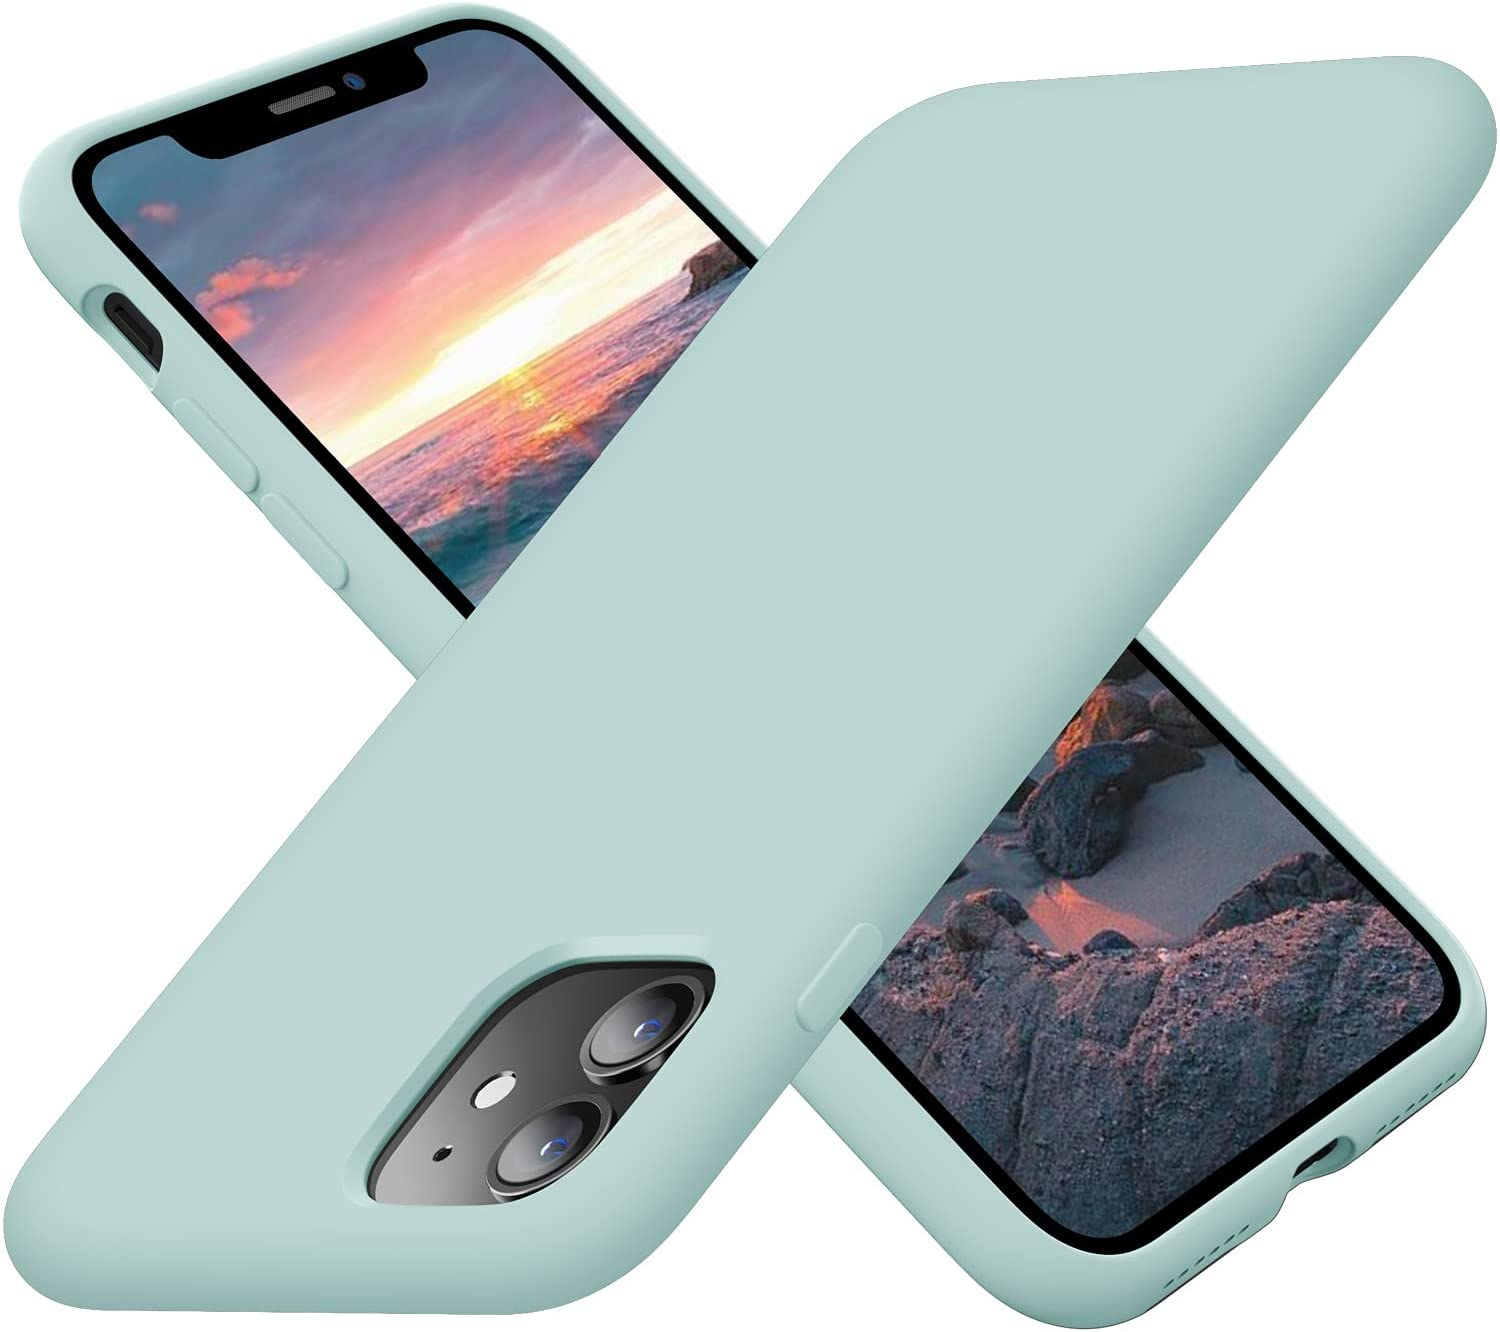 Cordking iPhone 11 Case for Girls, Silicone Ultra Slim Shockproof Phone Case with [Soft Anti-Scratch Microfiber Lining], 6.1 inch, Mint Green